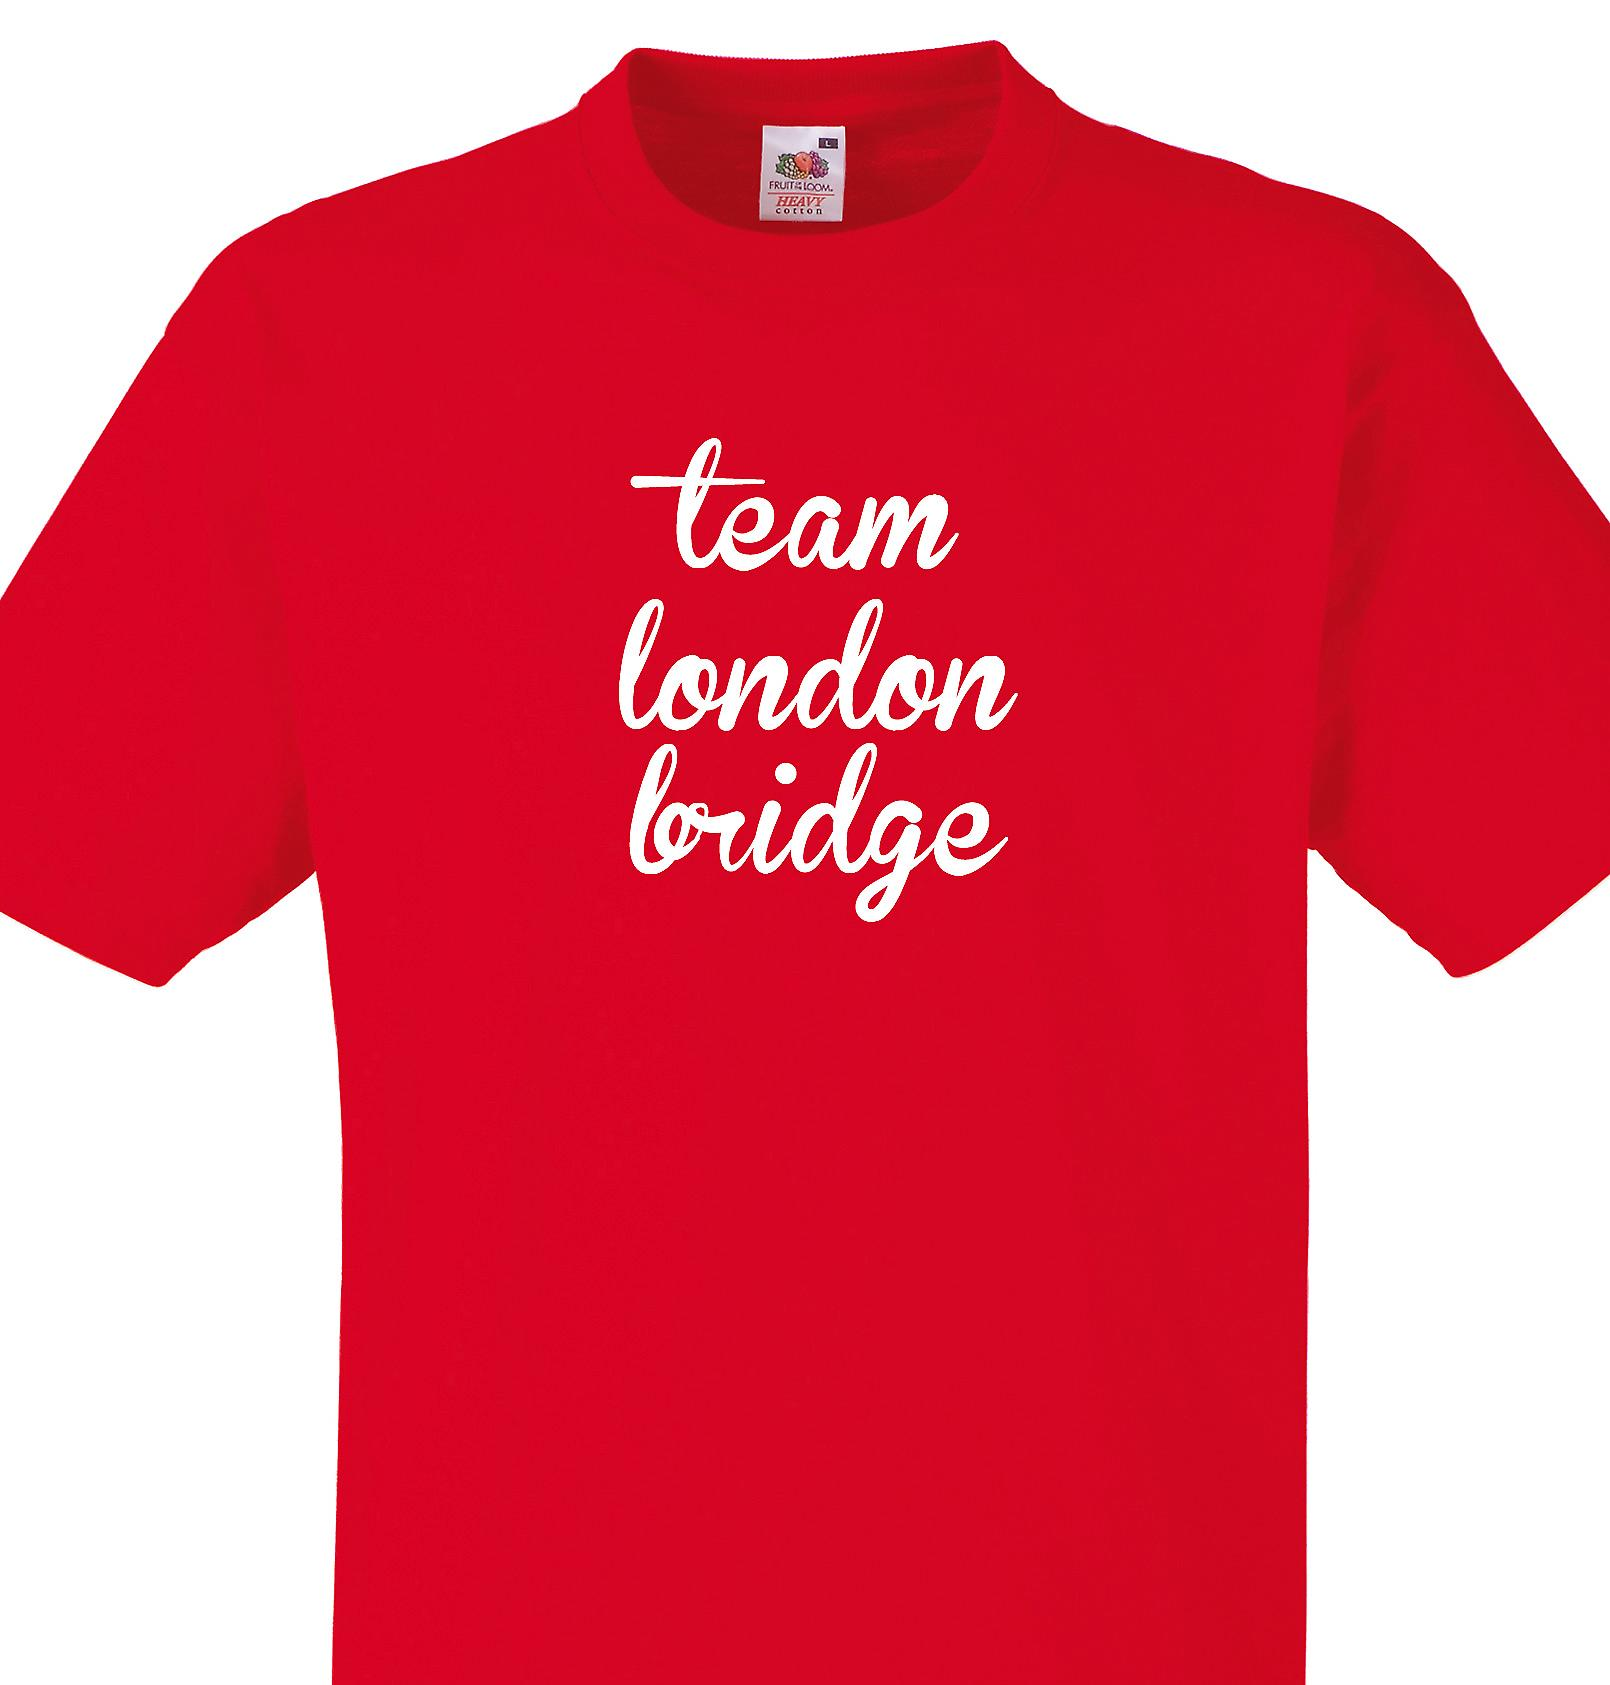 Team London bridge Red T shirt